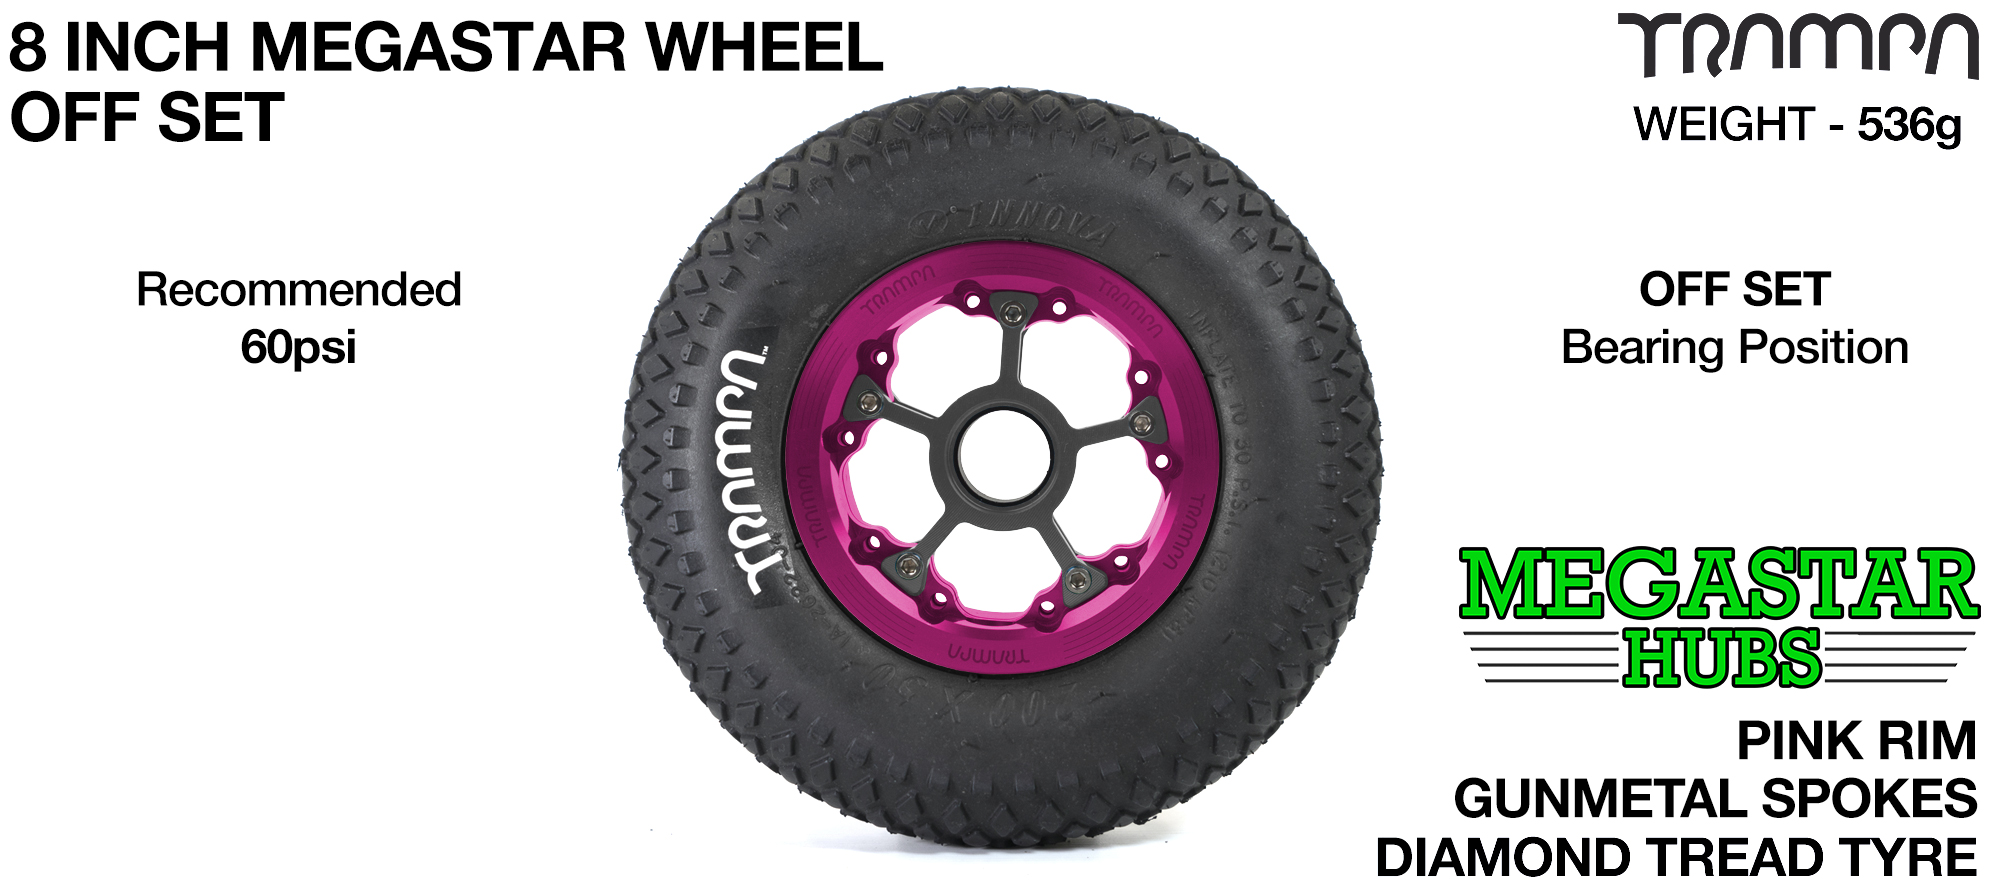 "PINK MEGASTAR Rims with GUNMETAL Spokes & 8"" DIAMOND Tyres"